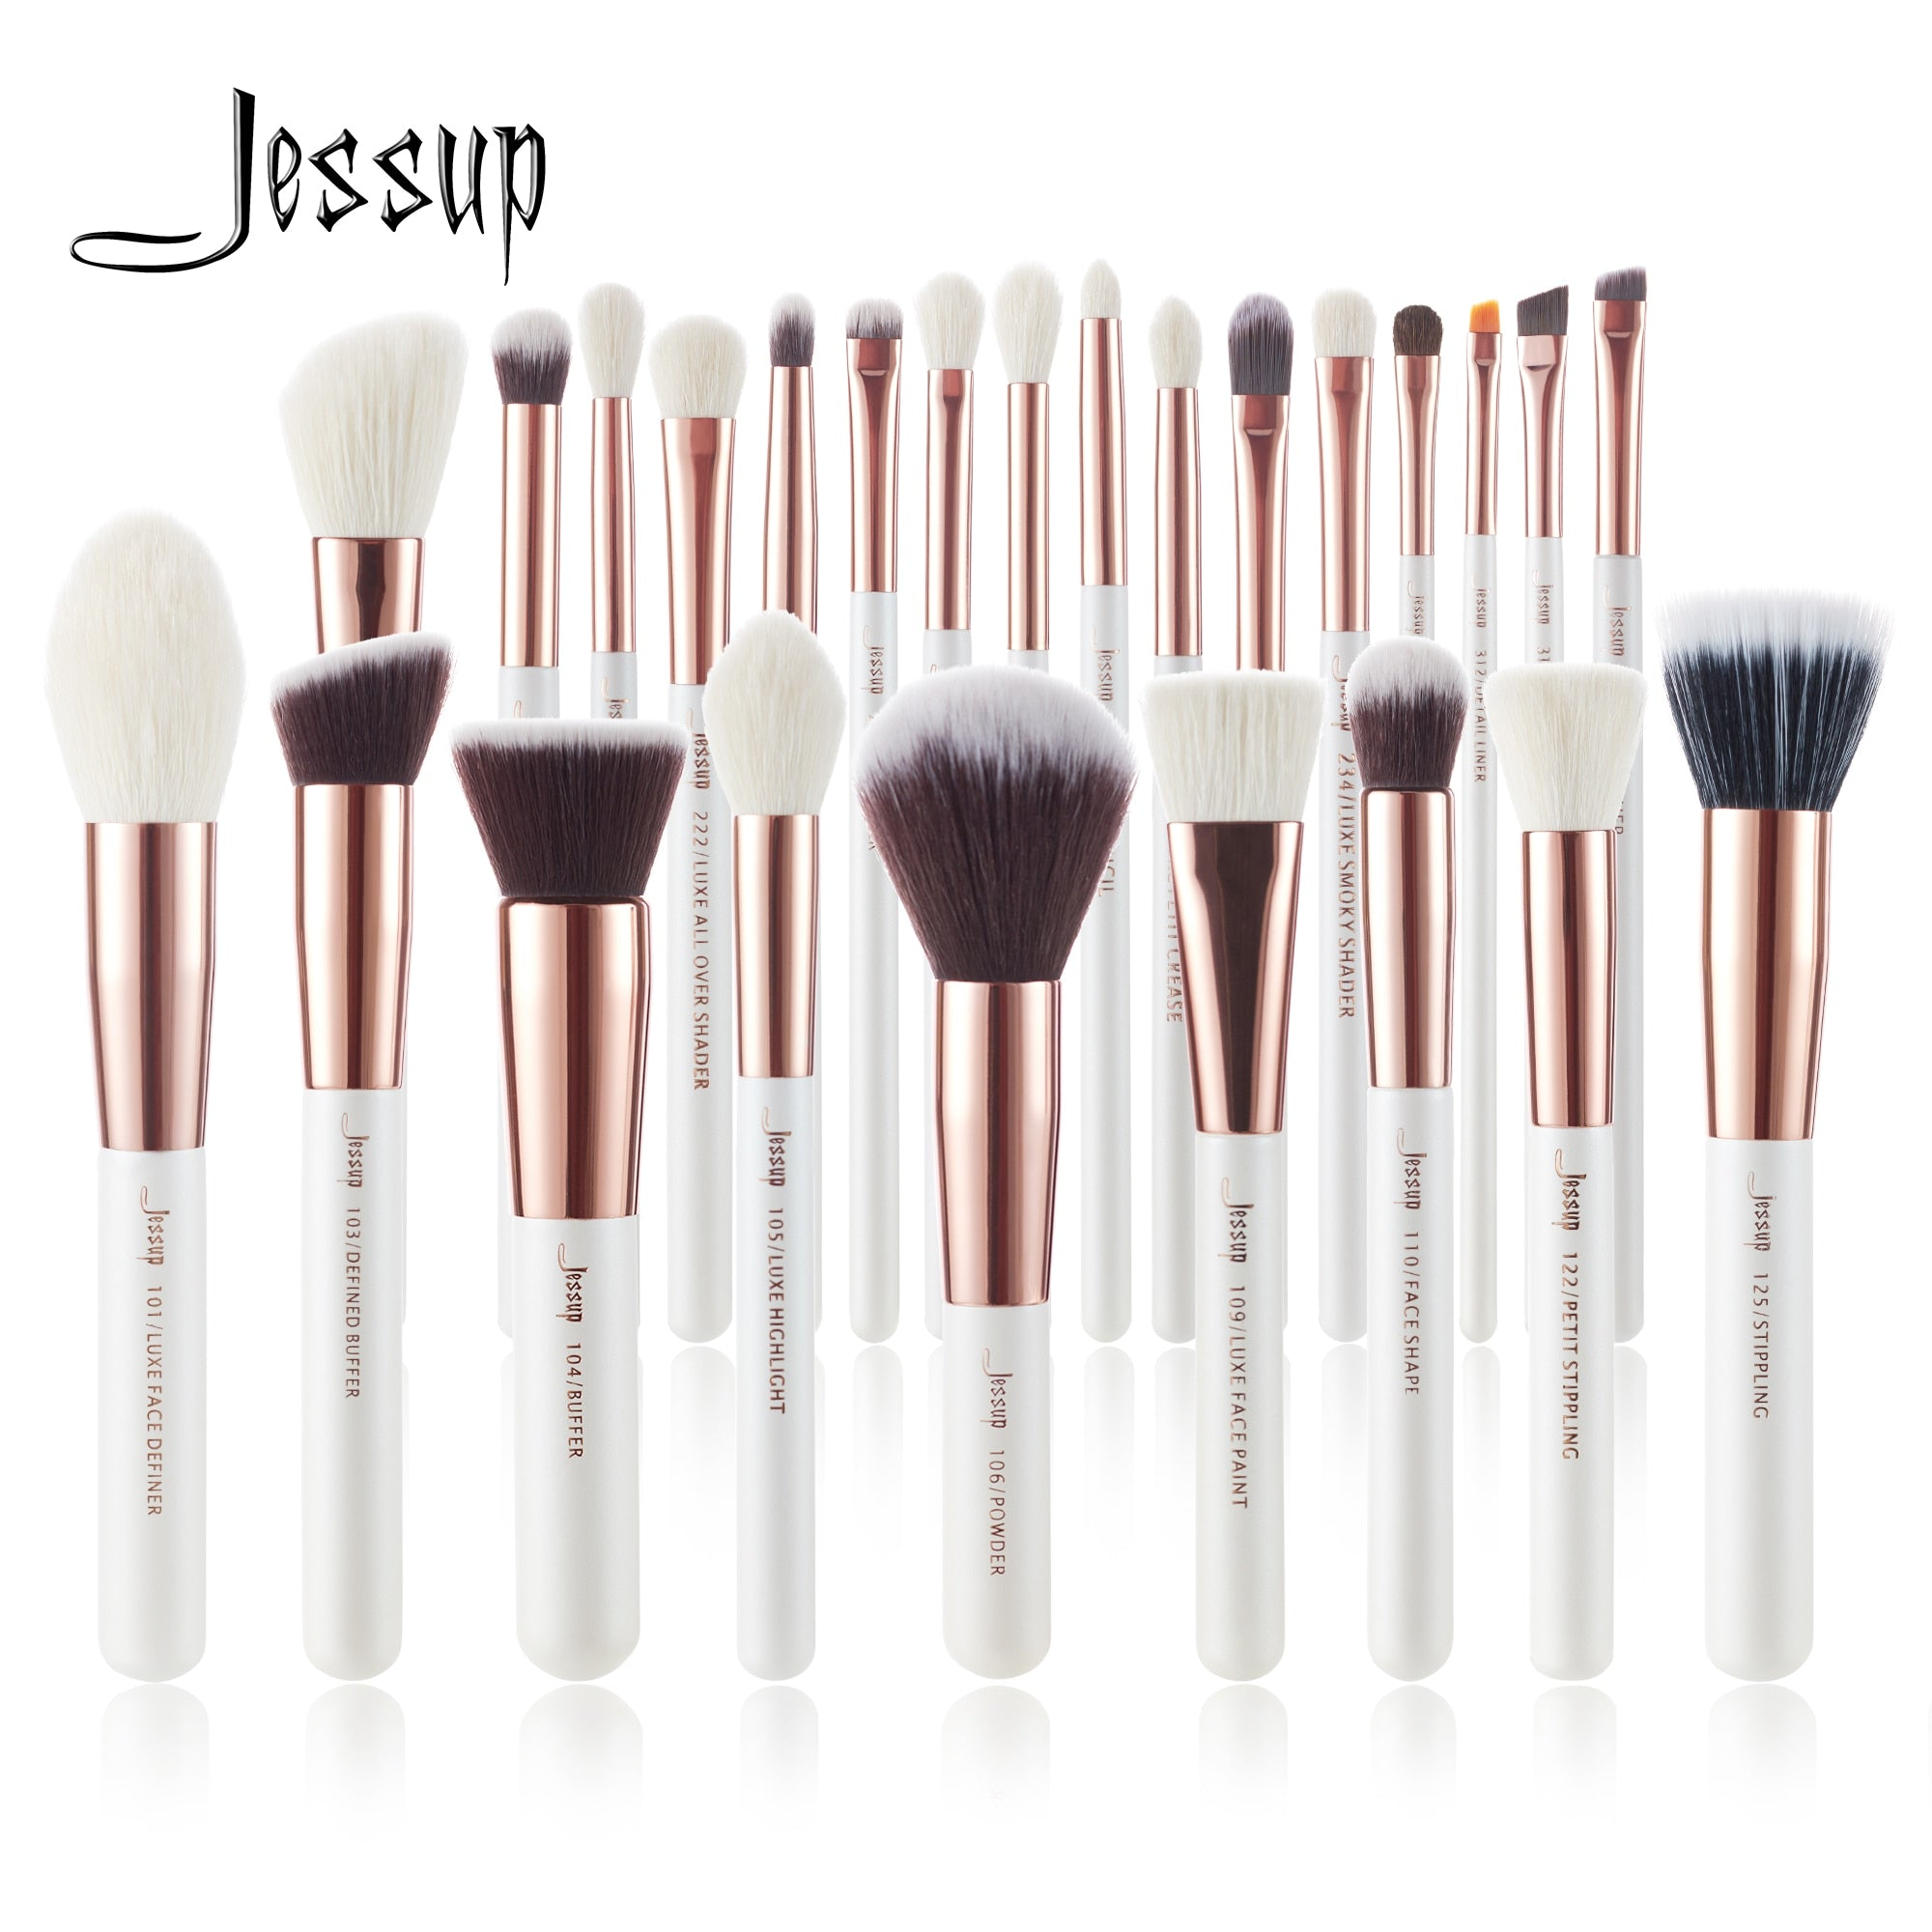 Jessup Makeup 6-25pcs Pearl White / Rose Gold Professional Foundation Powder Blushes